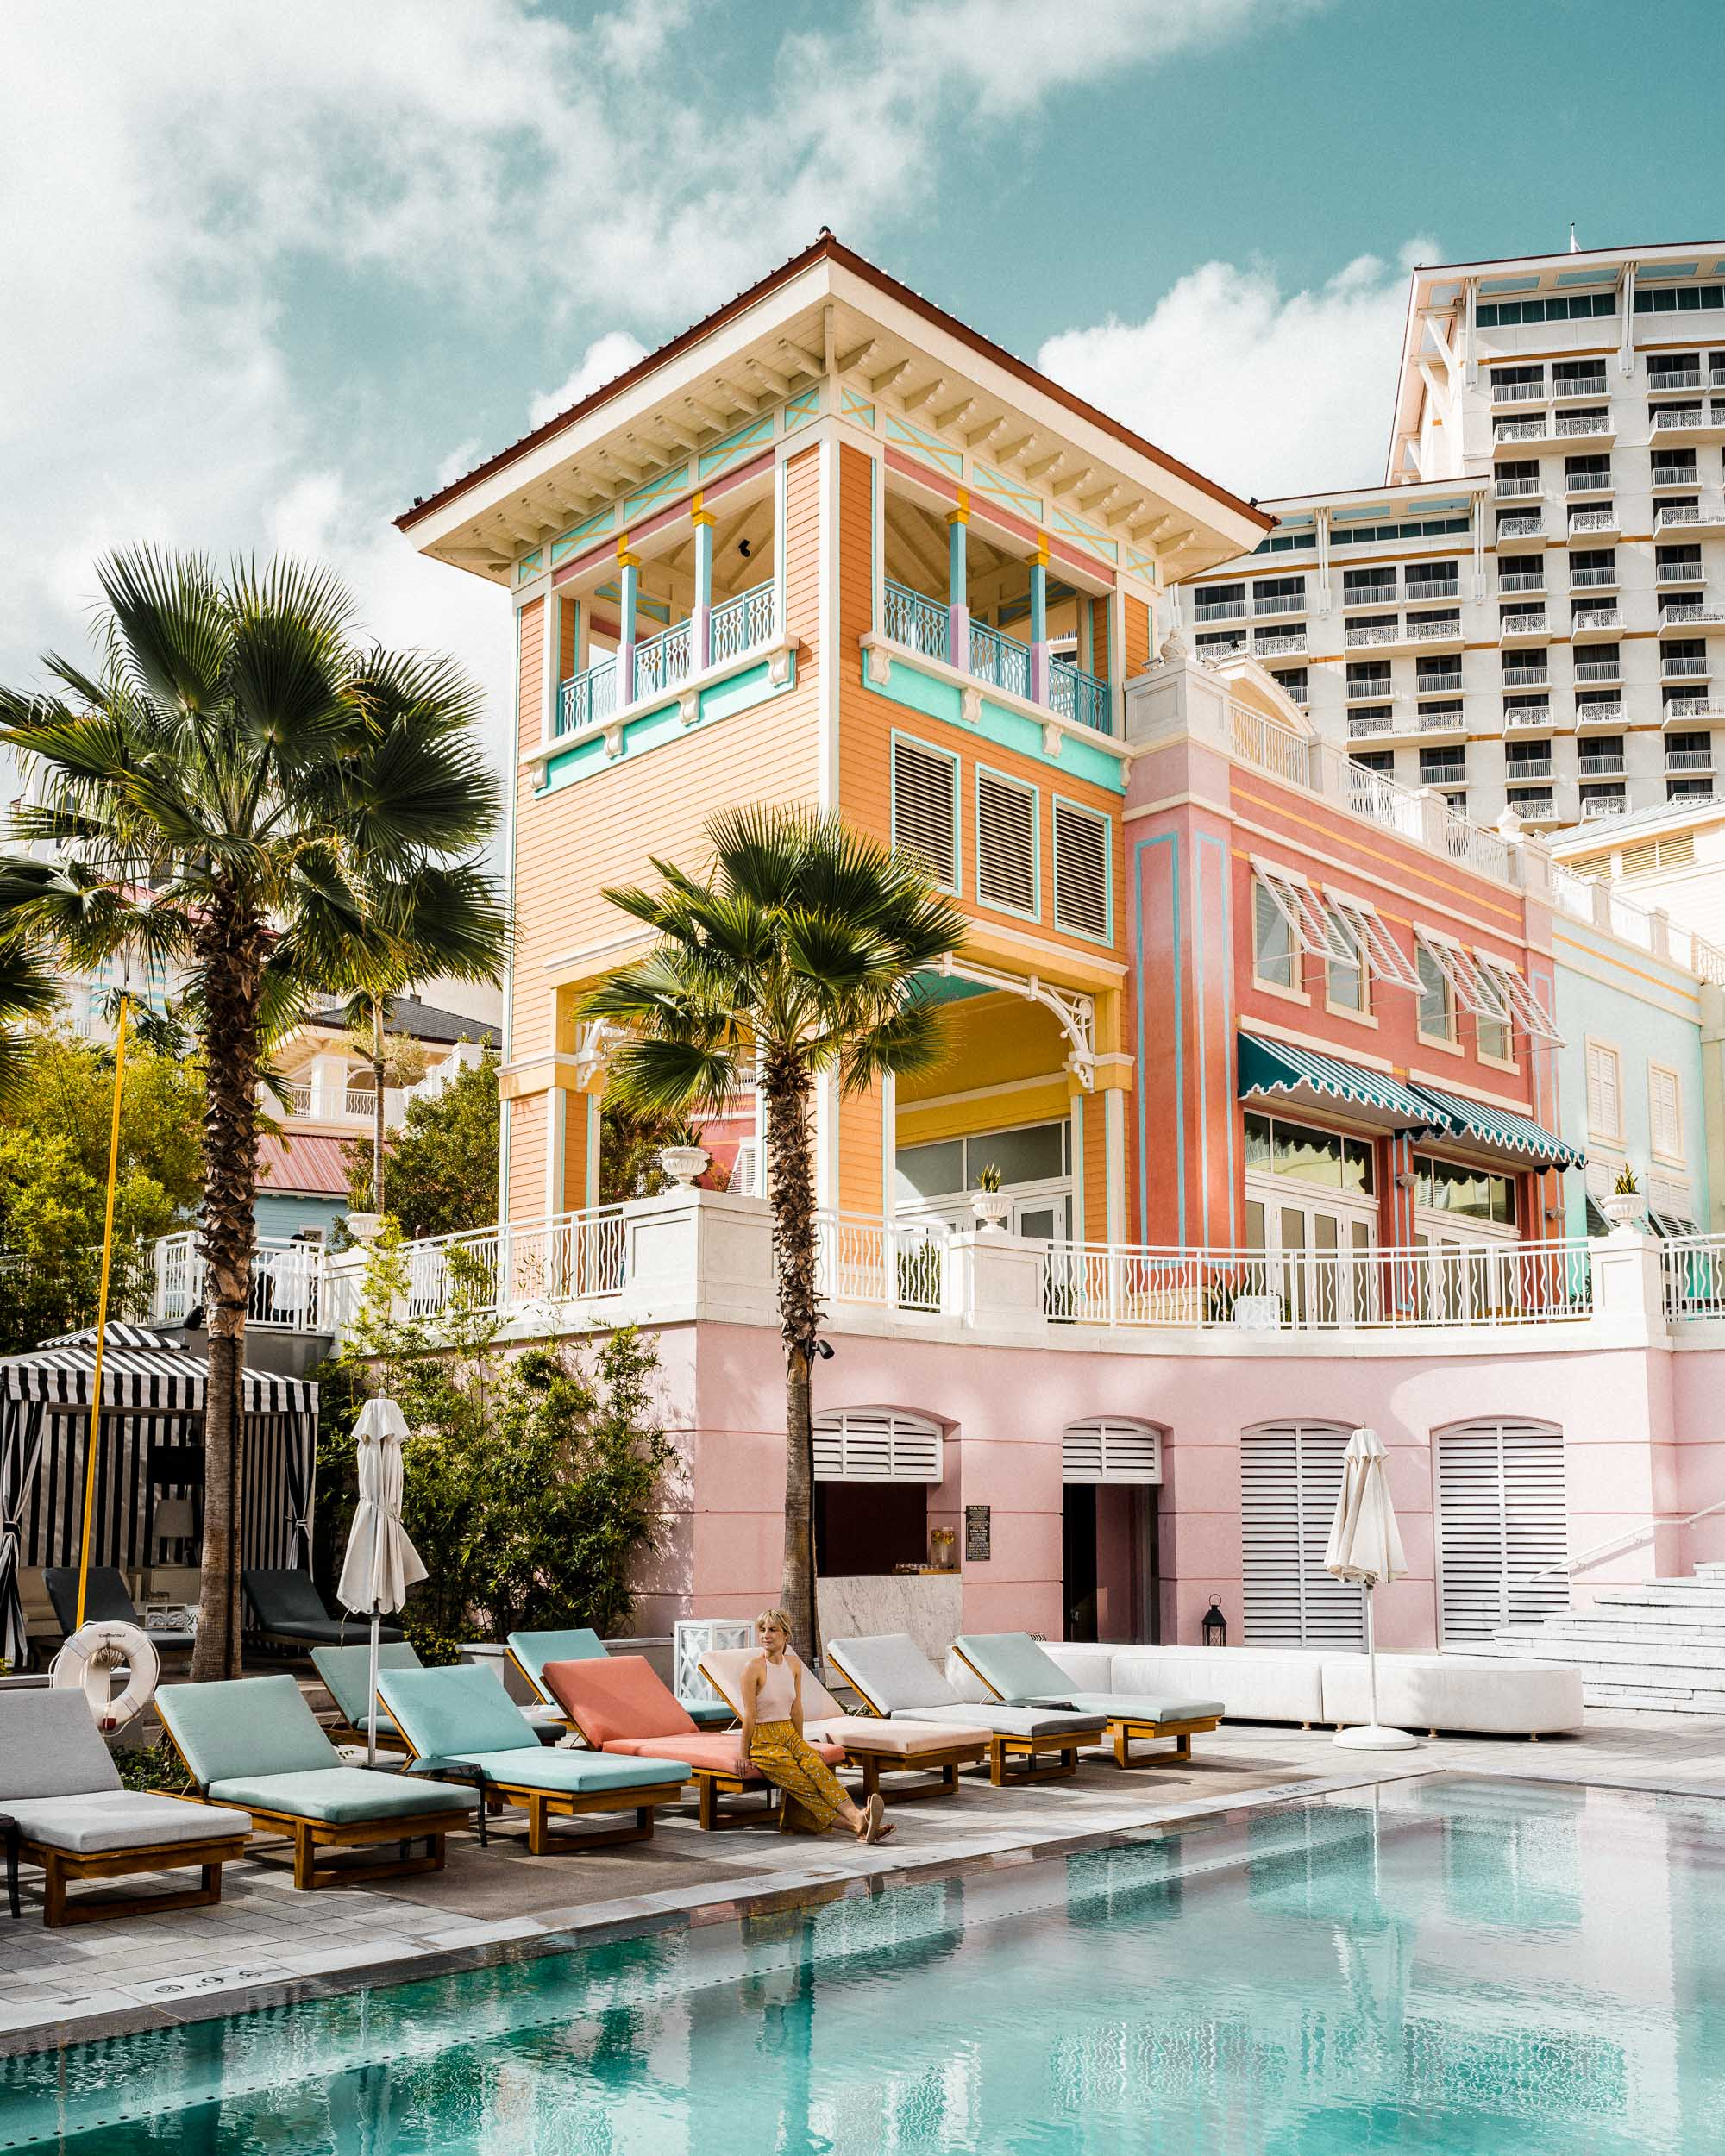 Pastel buildings at the SLS baha mar hotel in Nassau Bahamas